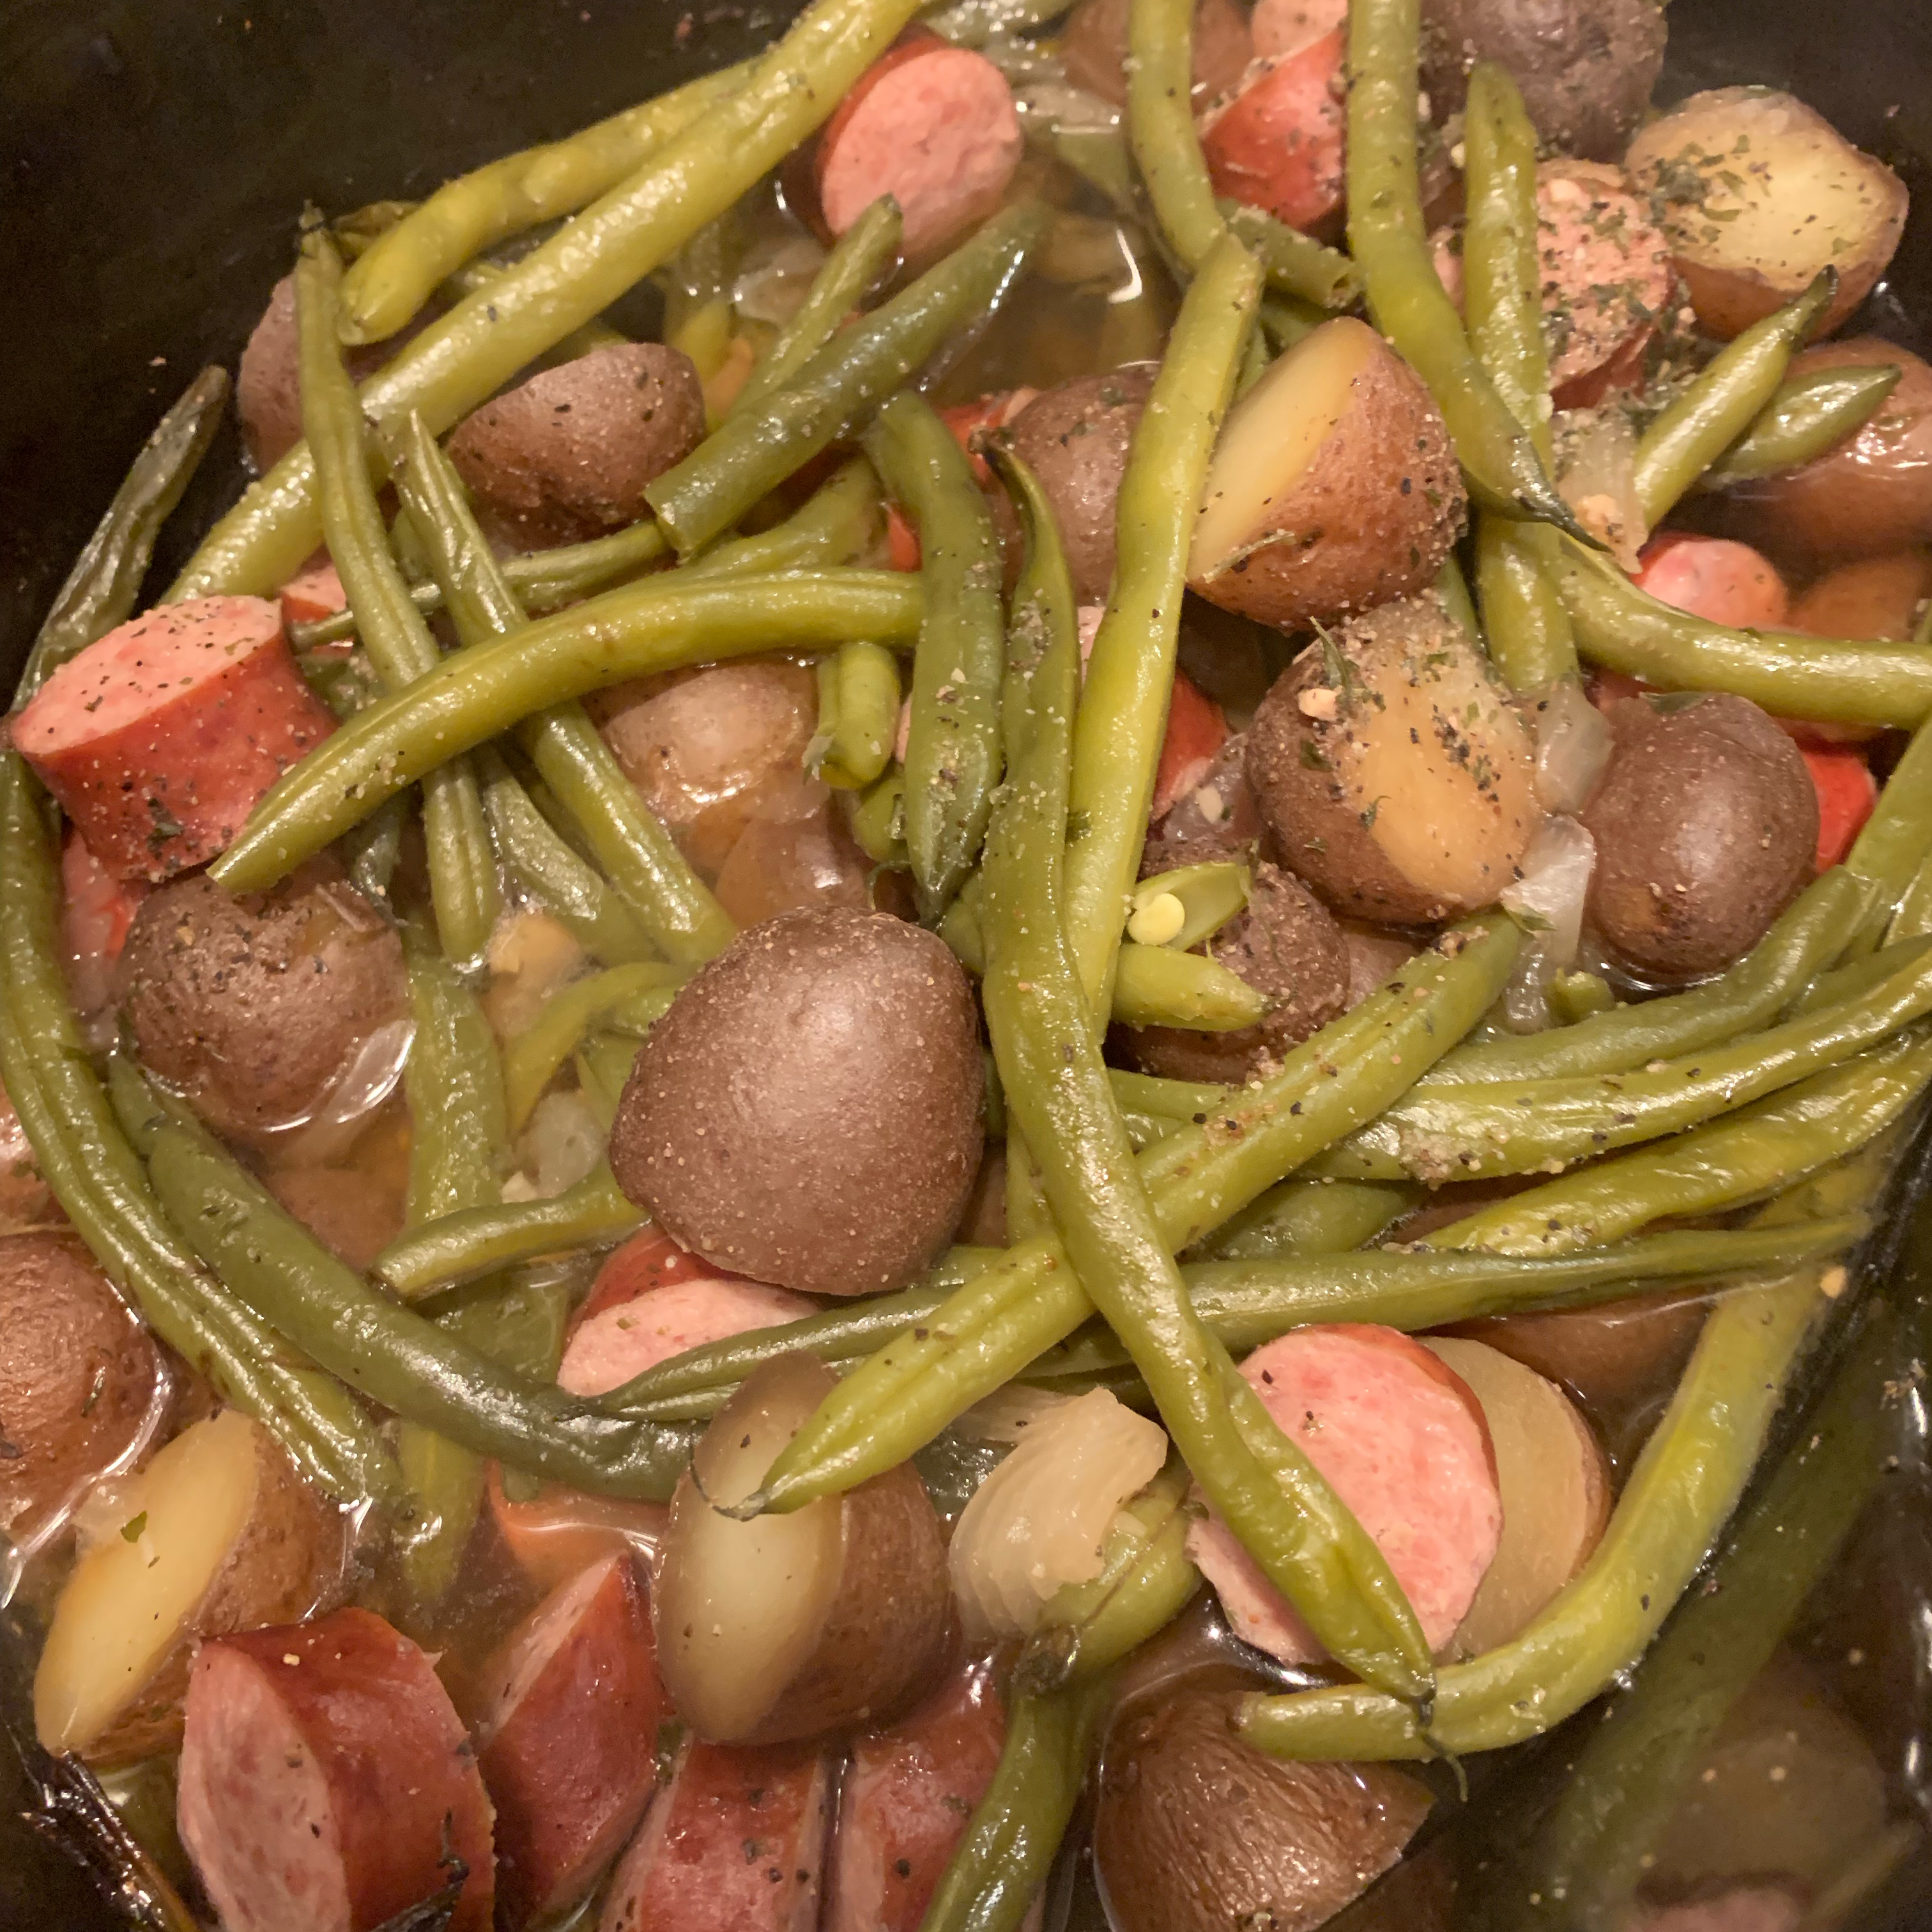 Amy's Po' Man Green Beans and Sausage Dish baconc